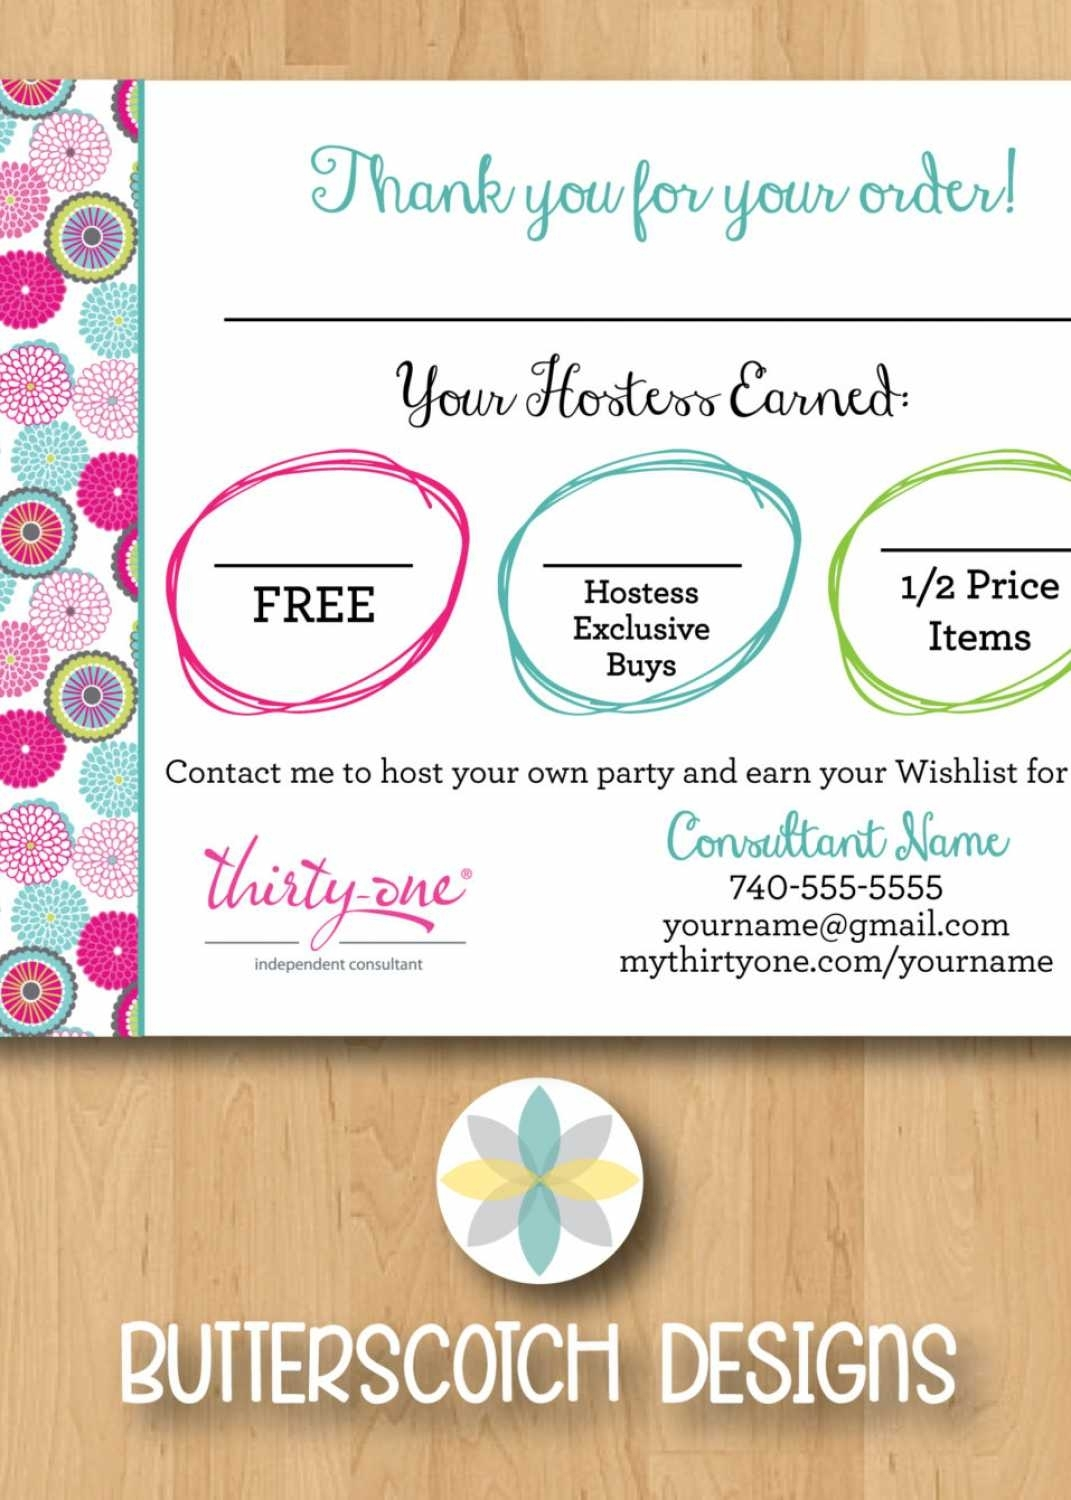 10 Nice Thirty One Party Invitation Ideas %name 2020